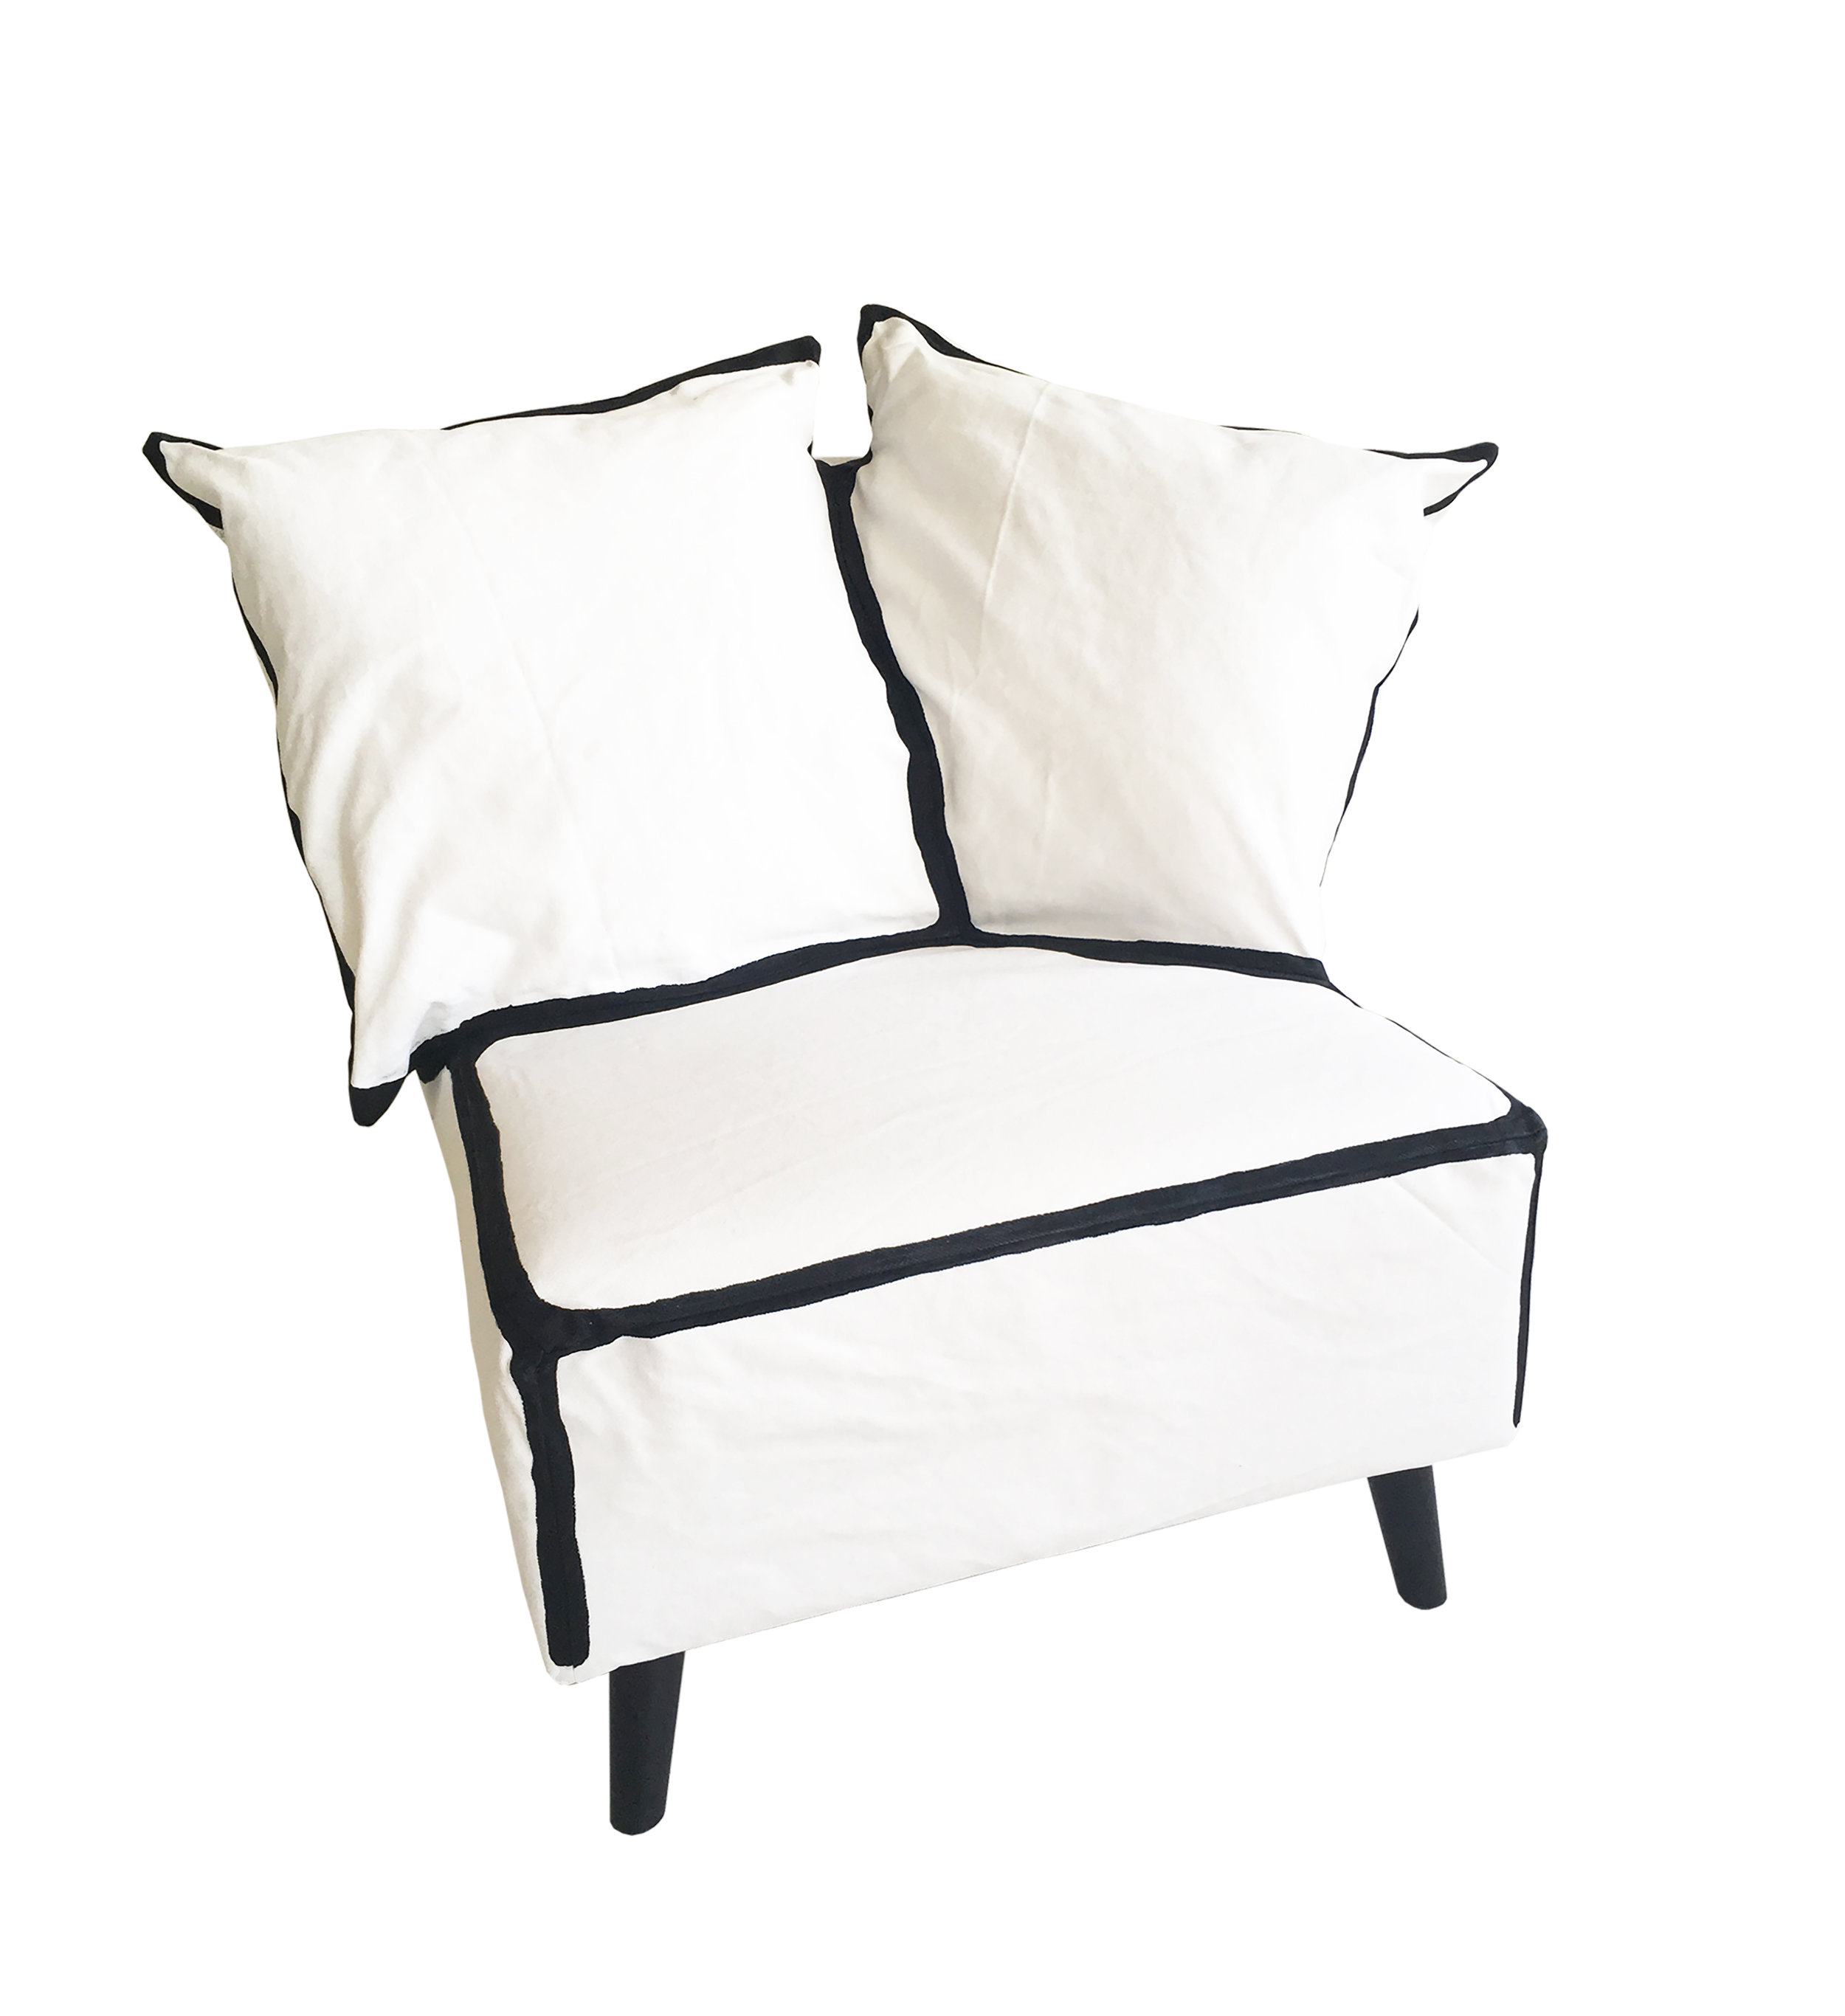 Low chair White 1.jpg